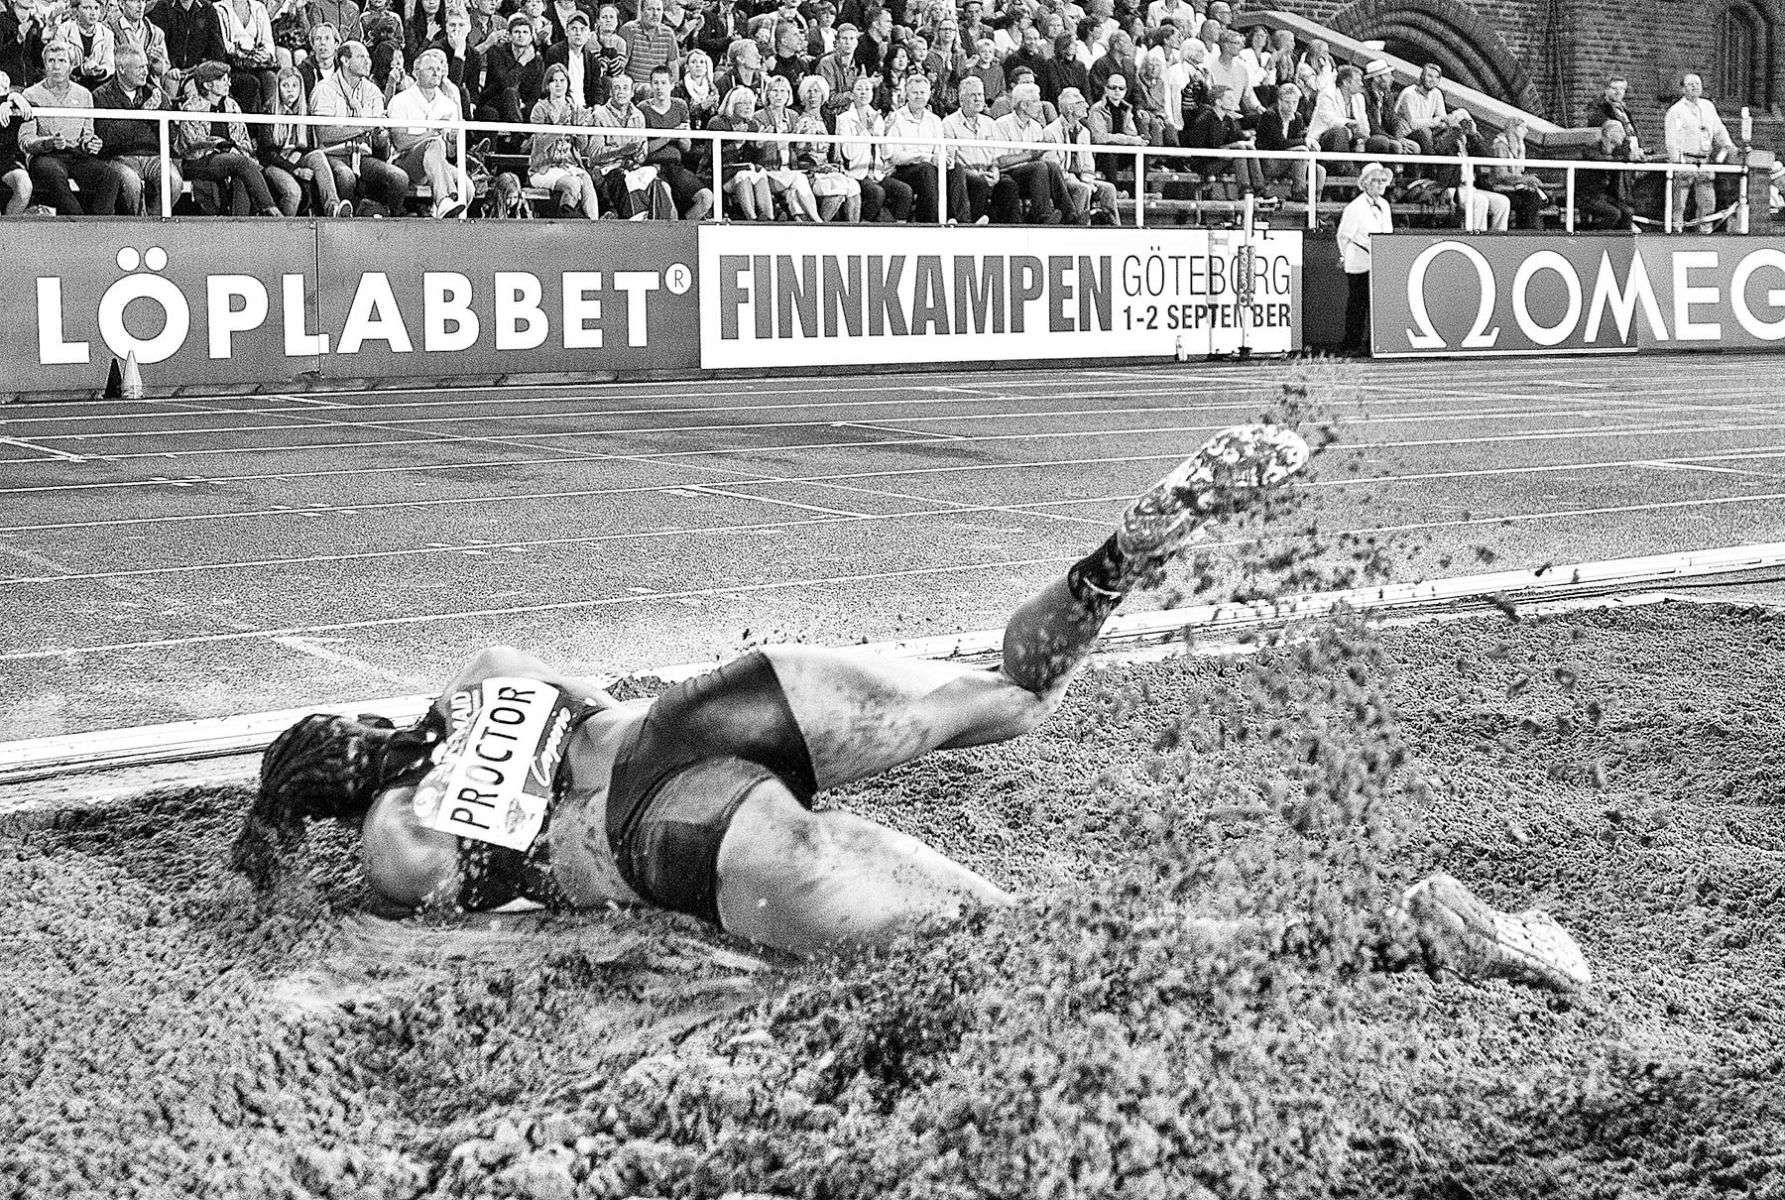 1dn_galan_lj_w_bw_track_and_field_image_jeff_cohen_photo_lb.jpg